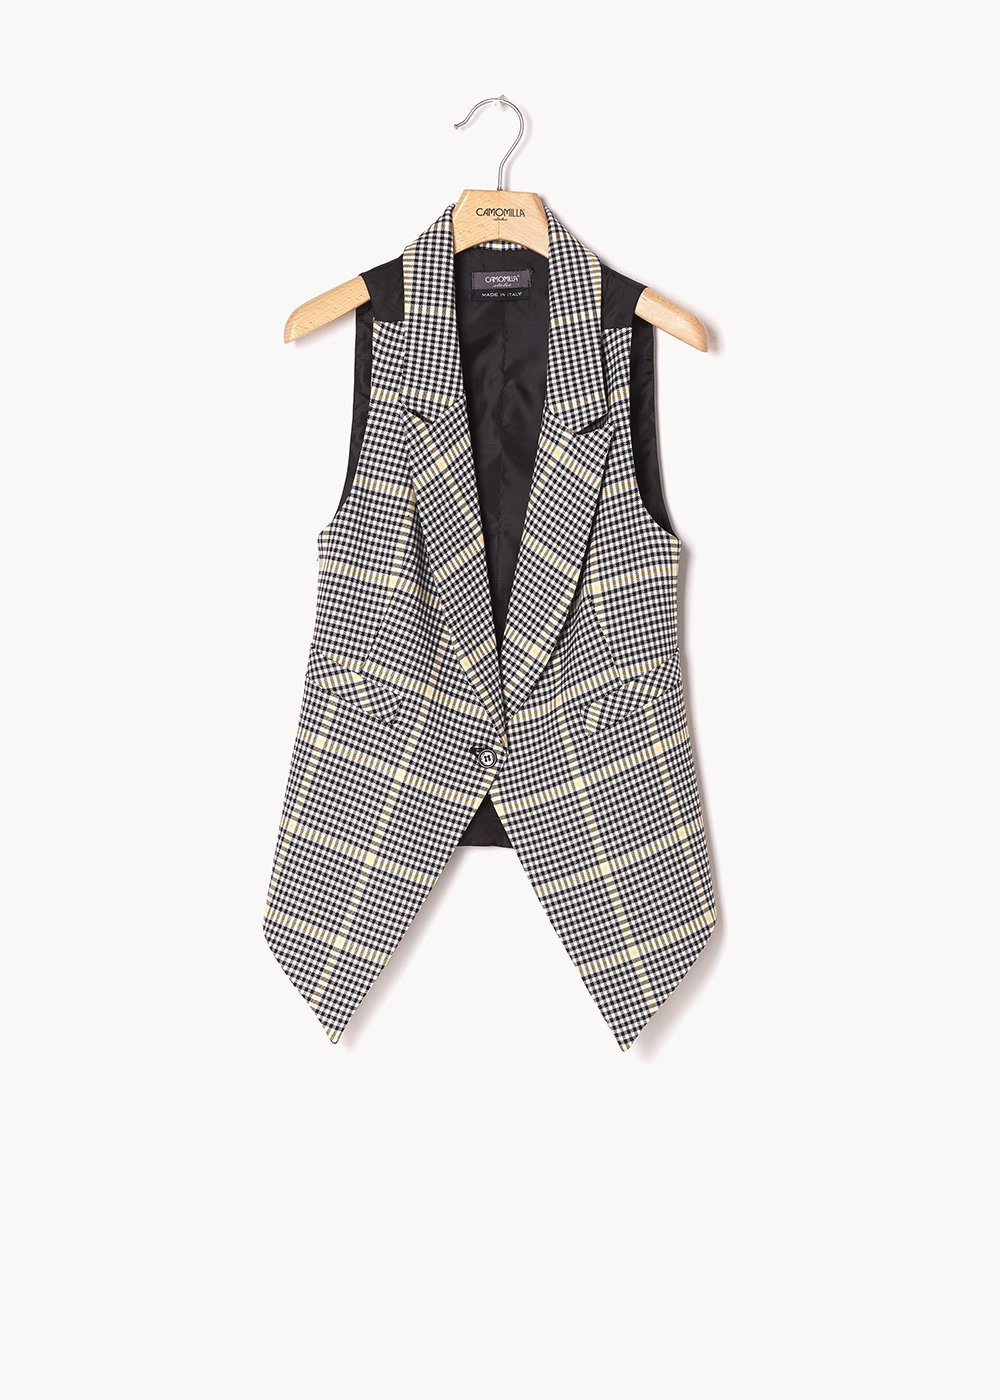 Gil waistcoat with checked pattern - White Black Fantasia - Woman